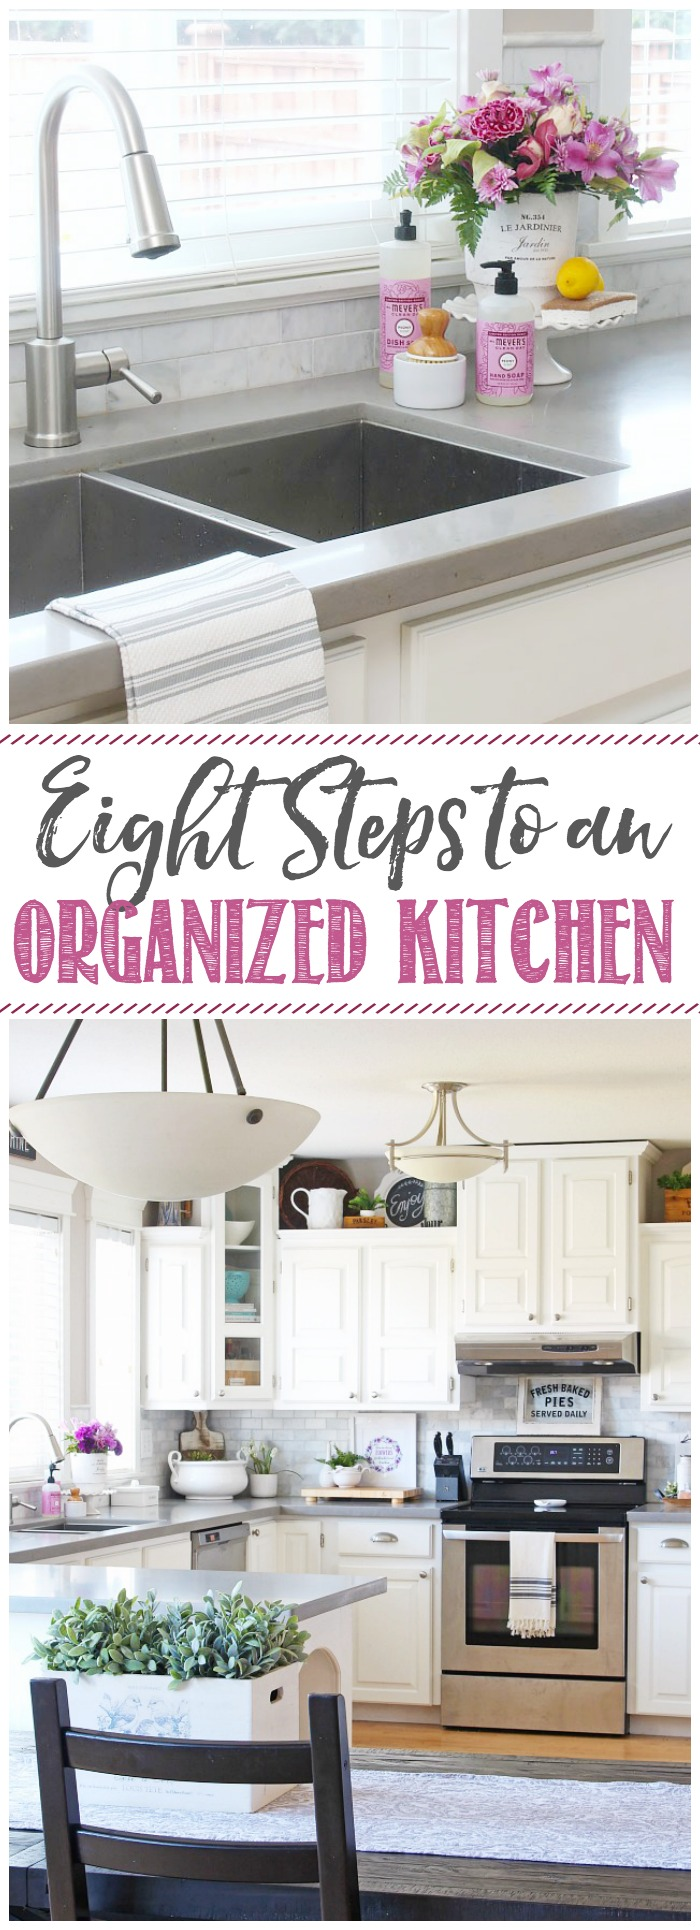 8 steps to an organized kitchen. Once you get the proper systems in place, it takes very little maintenance to keep it that way!